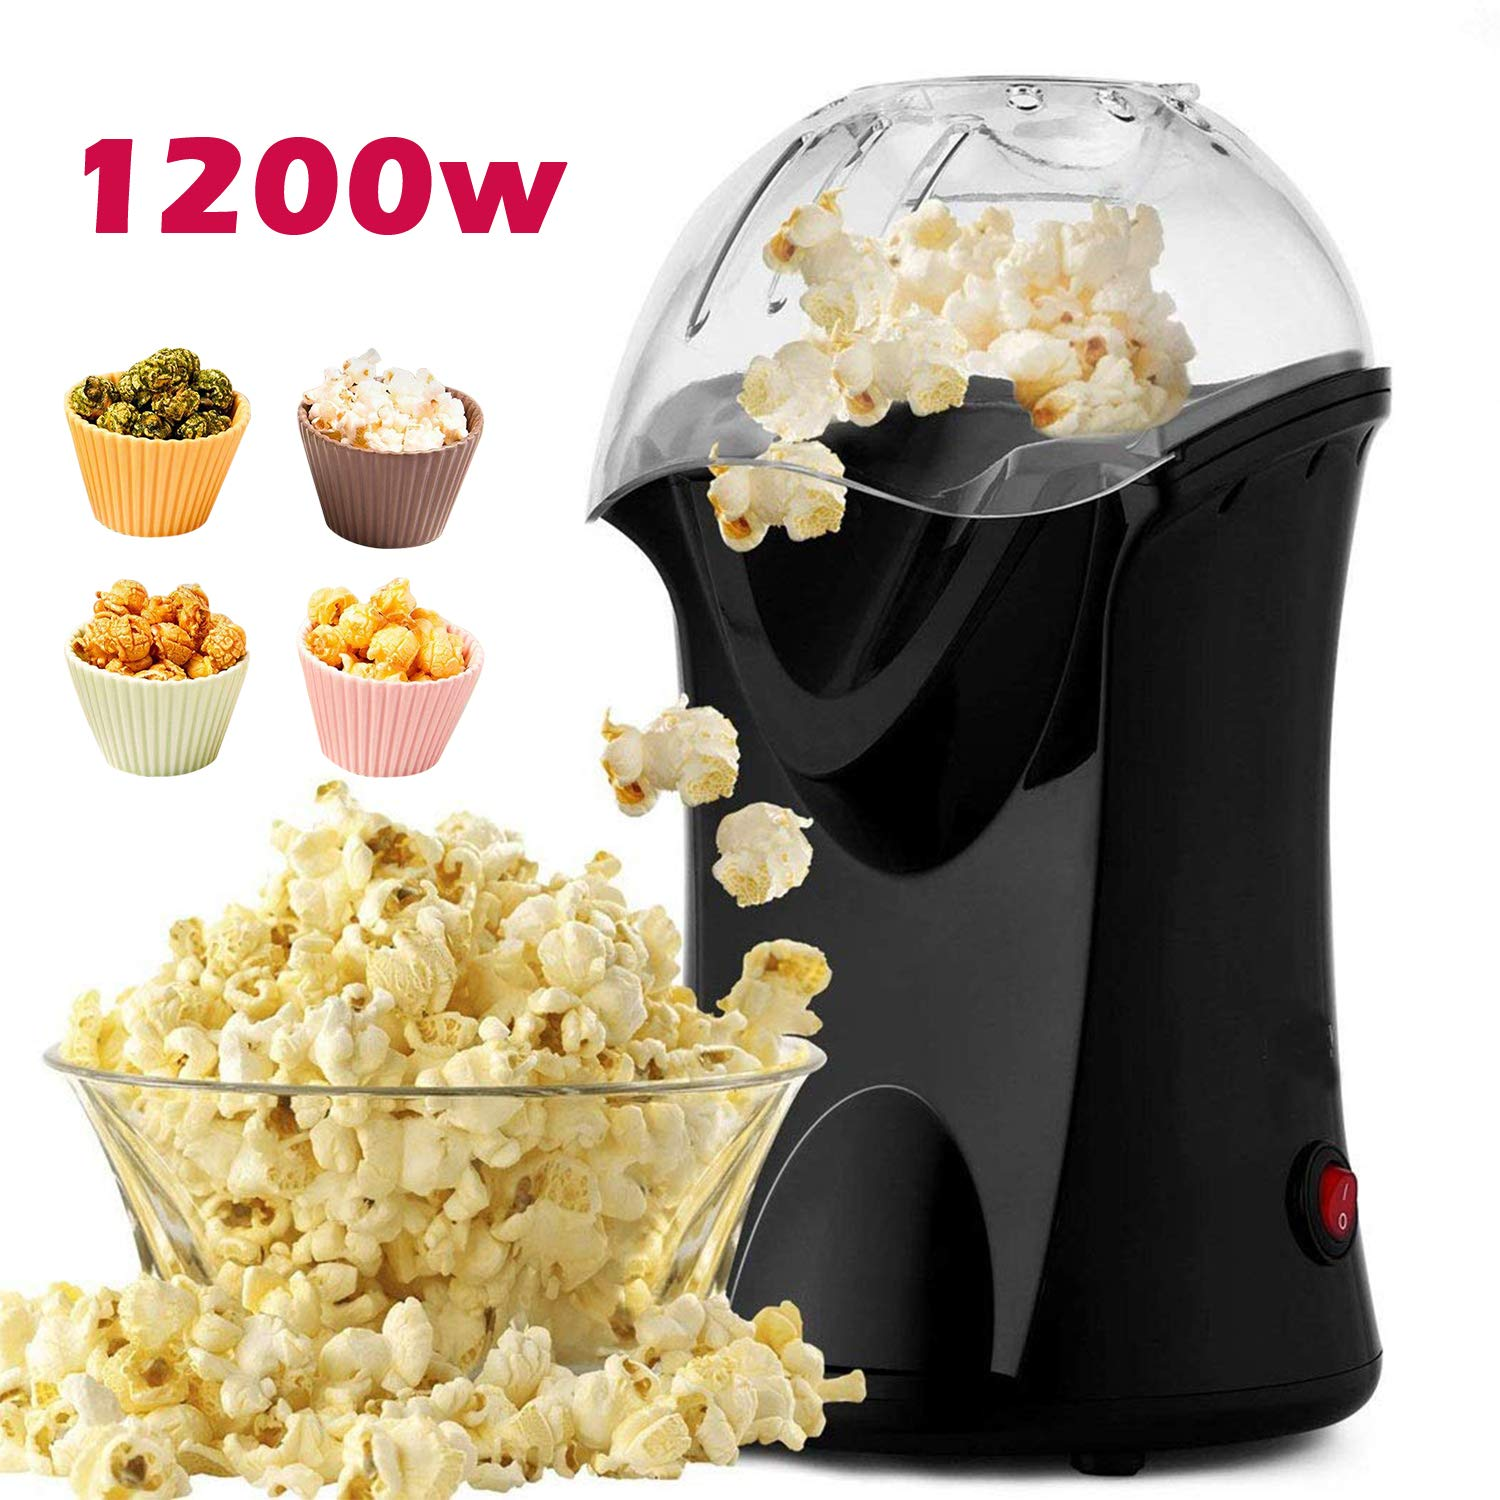 Popcorn Popper, Hot Air Popcorn Maker, 1200W Popcorn Machine with Measuring Cup, Removable Lid, Healthy Popcorn Maker for Home,No Oil Needed by Homdox